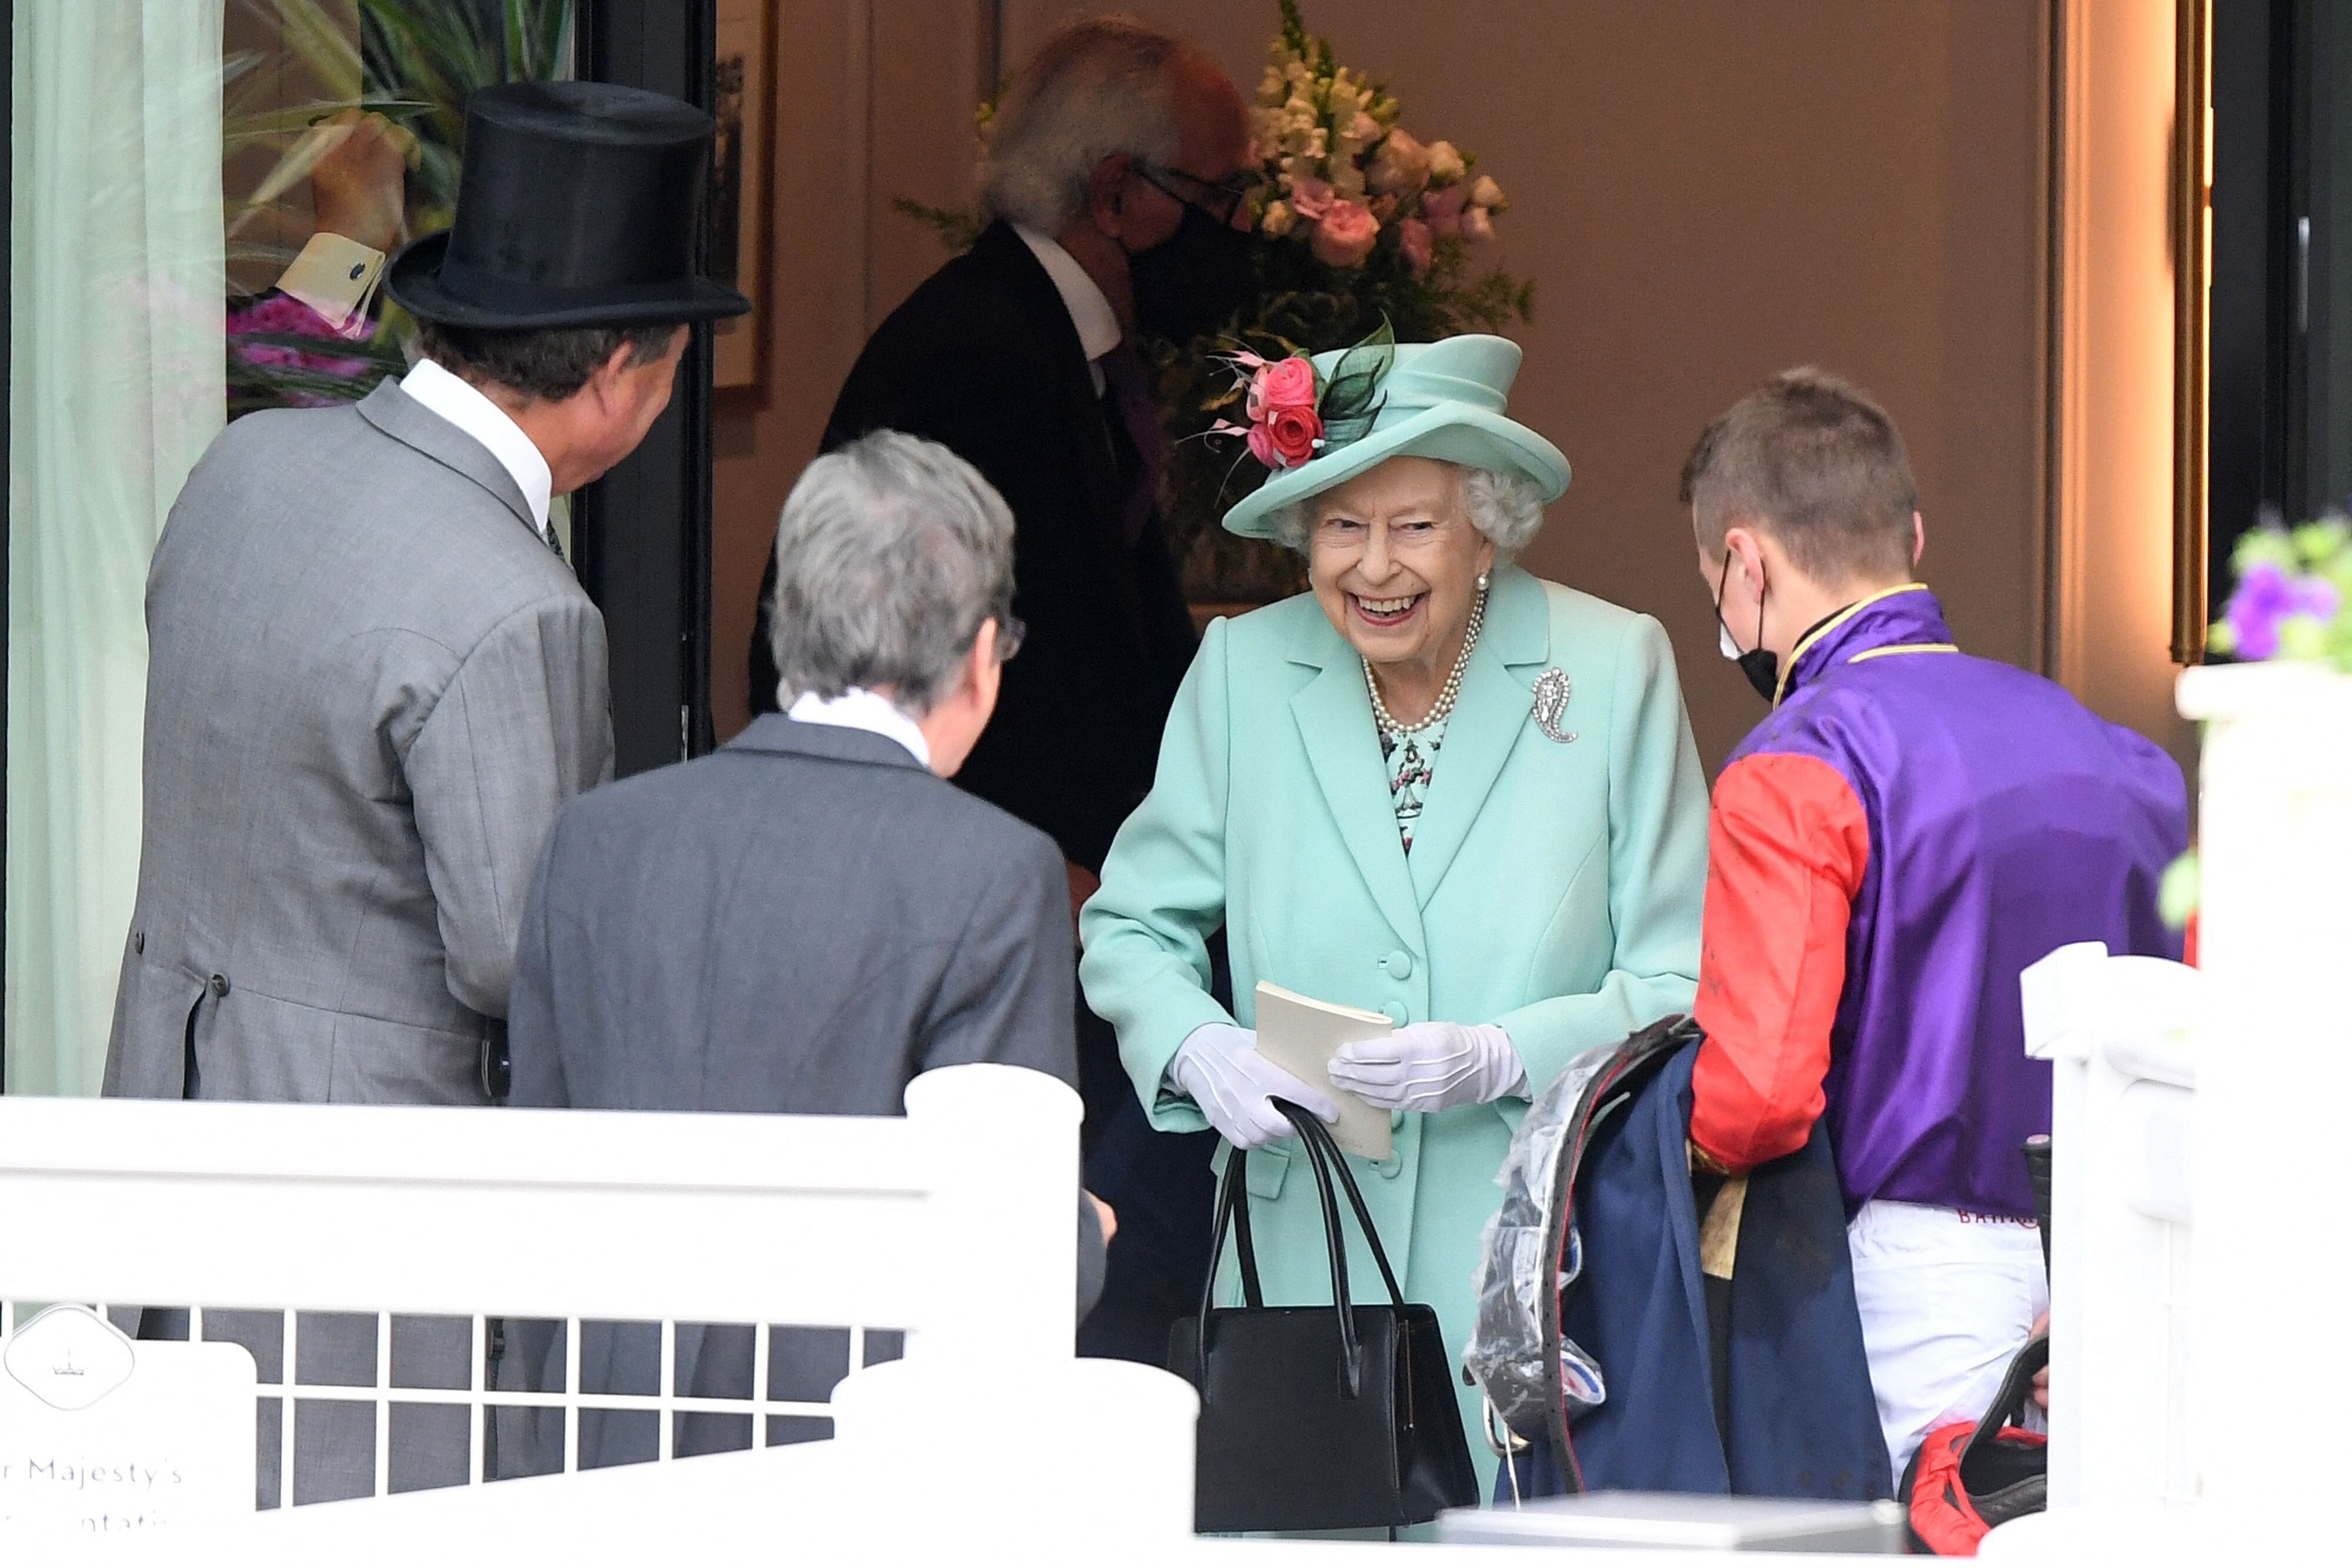 The queen smiles as she meets a jockey on the fifth day of the Royal Ascot horse racing meet. Royal Ascot reopened its doors